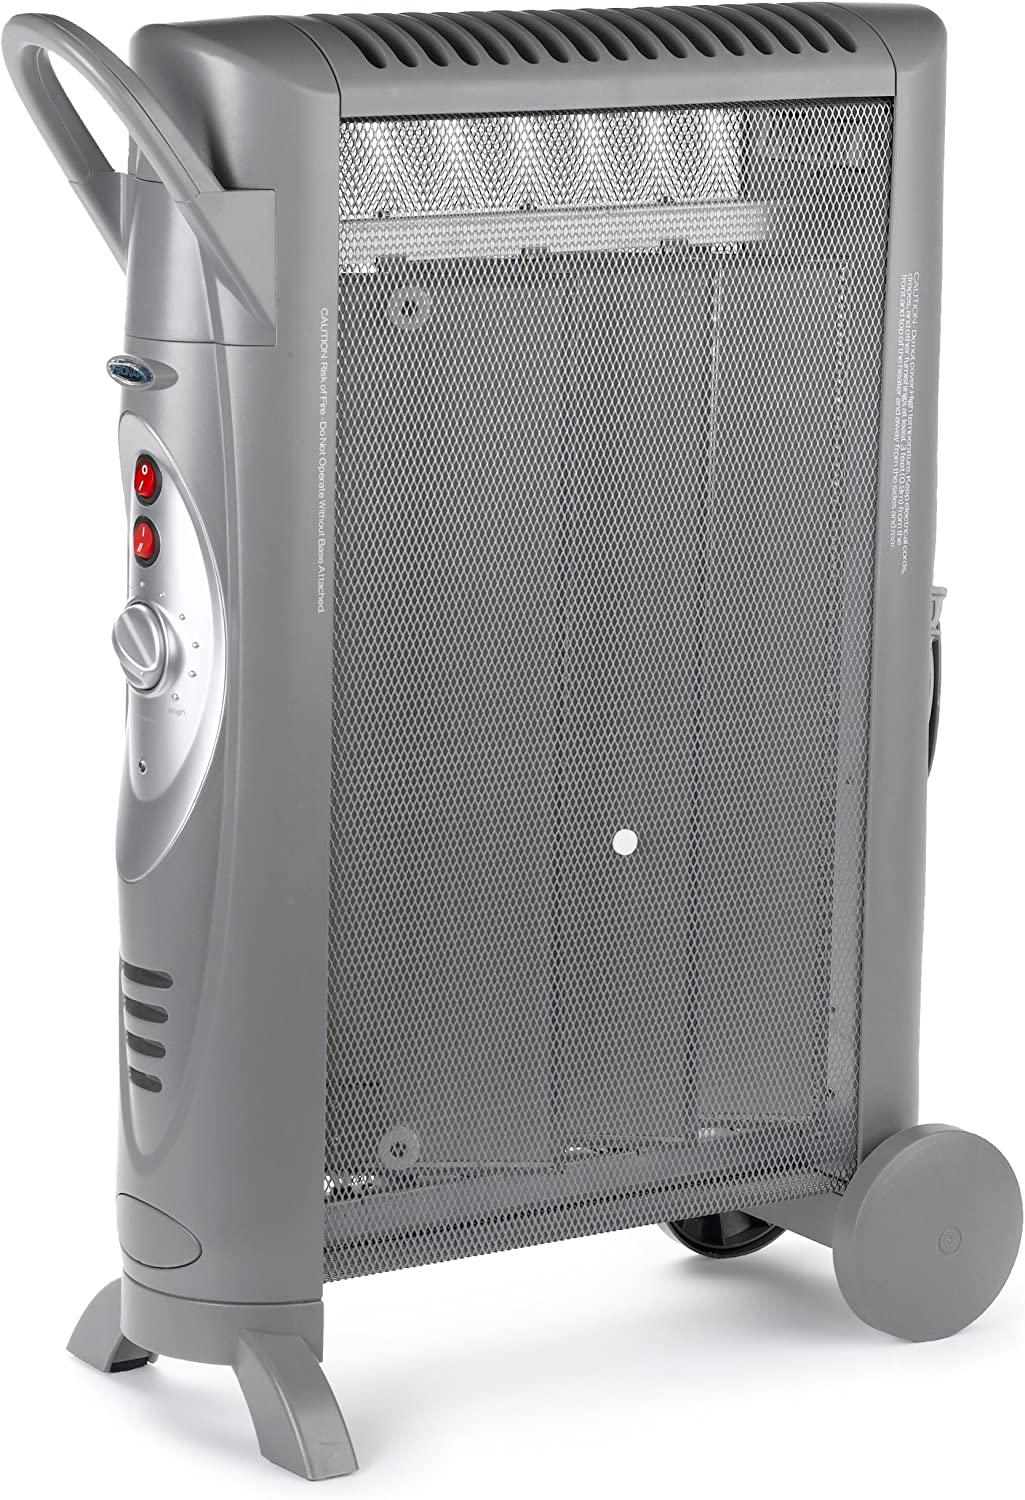 Bionaire Silent Micathermic Space Heater